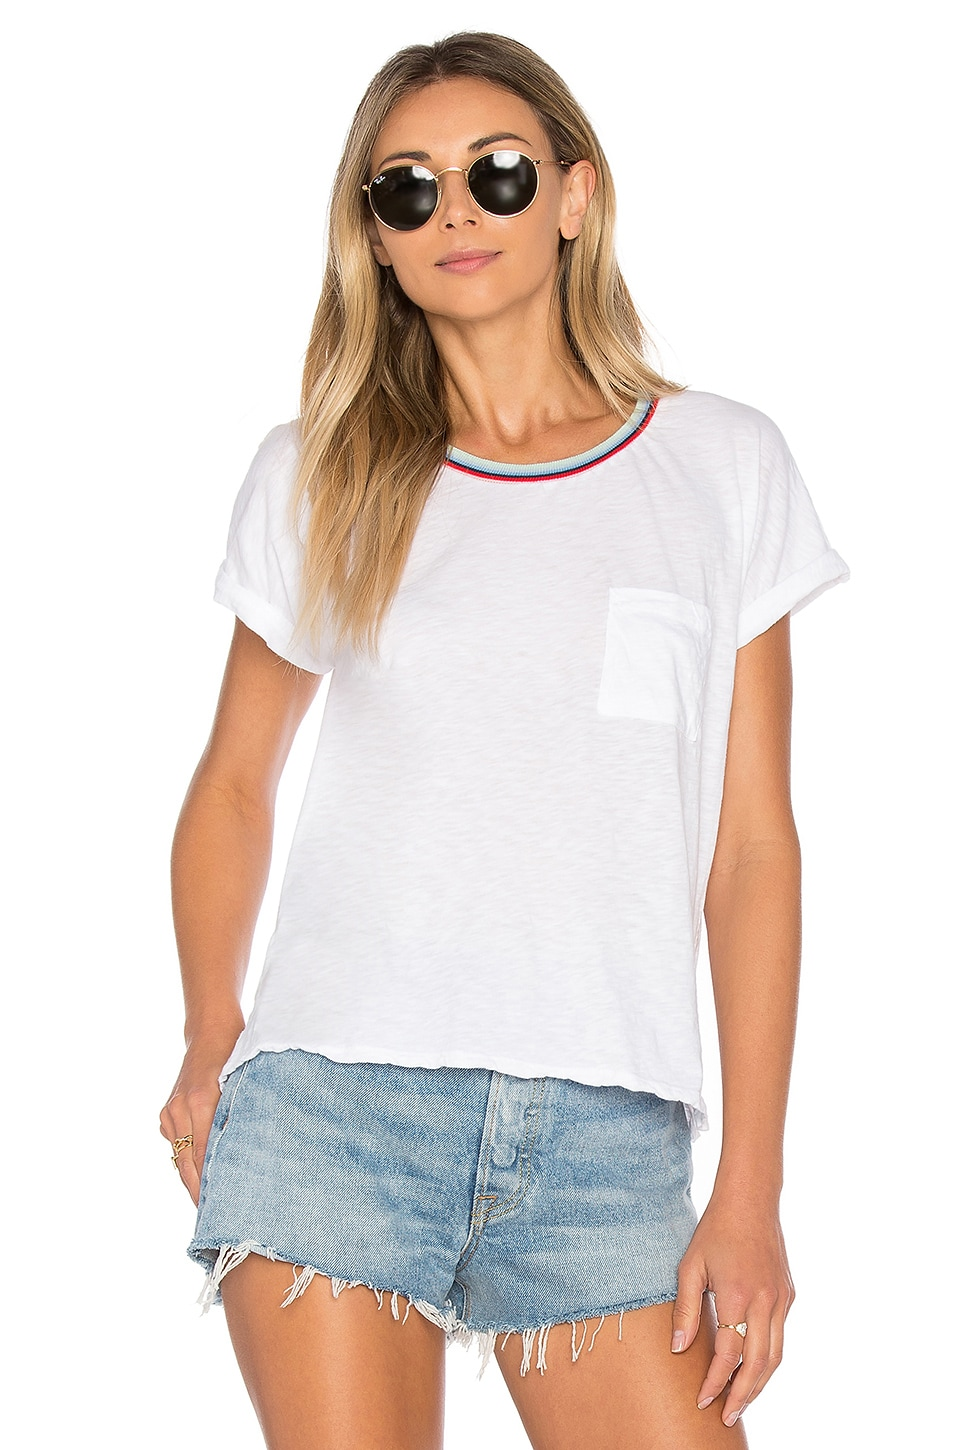 Velvet by Graham & Spencer Sonnet Tee in White